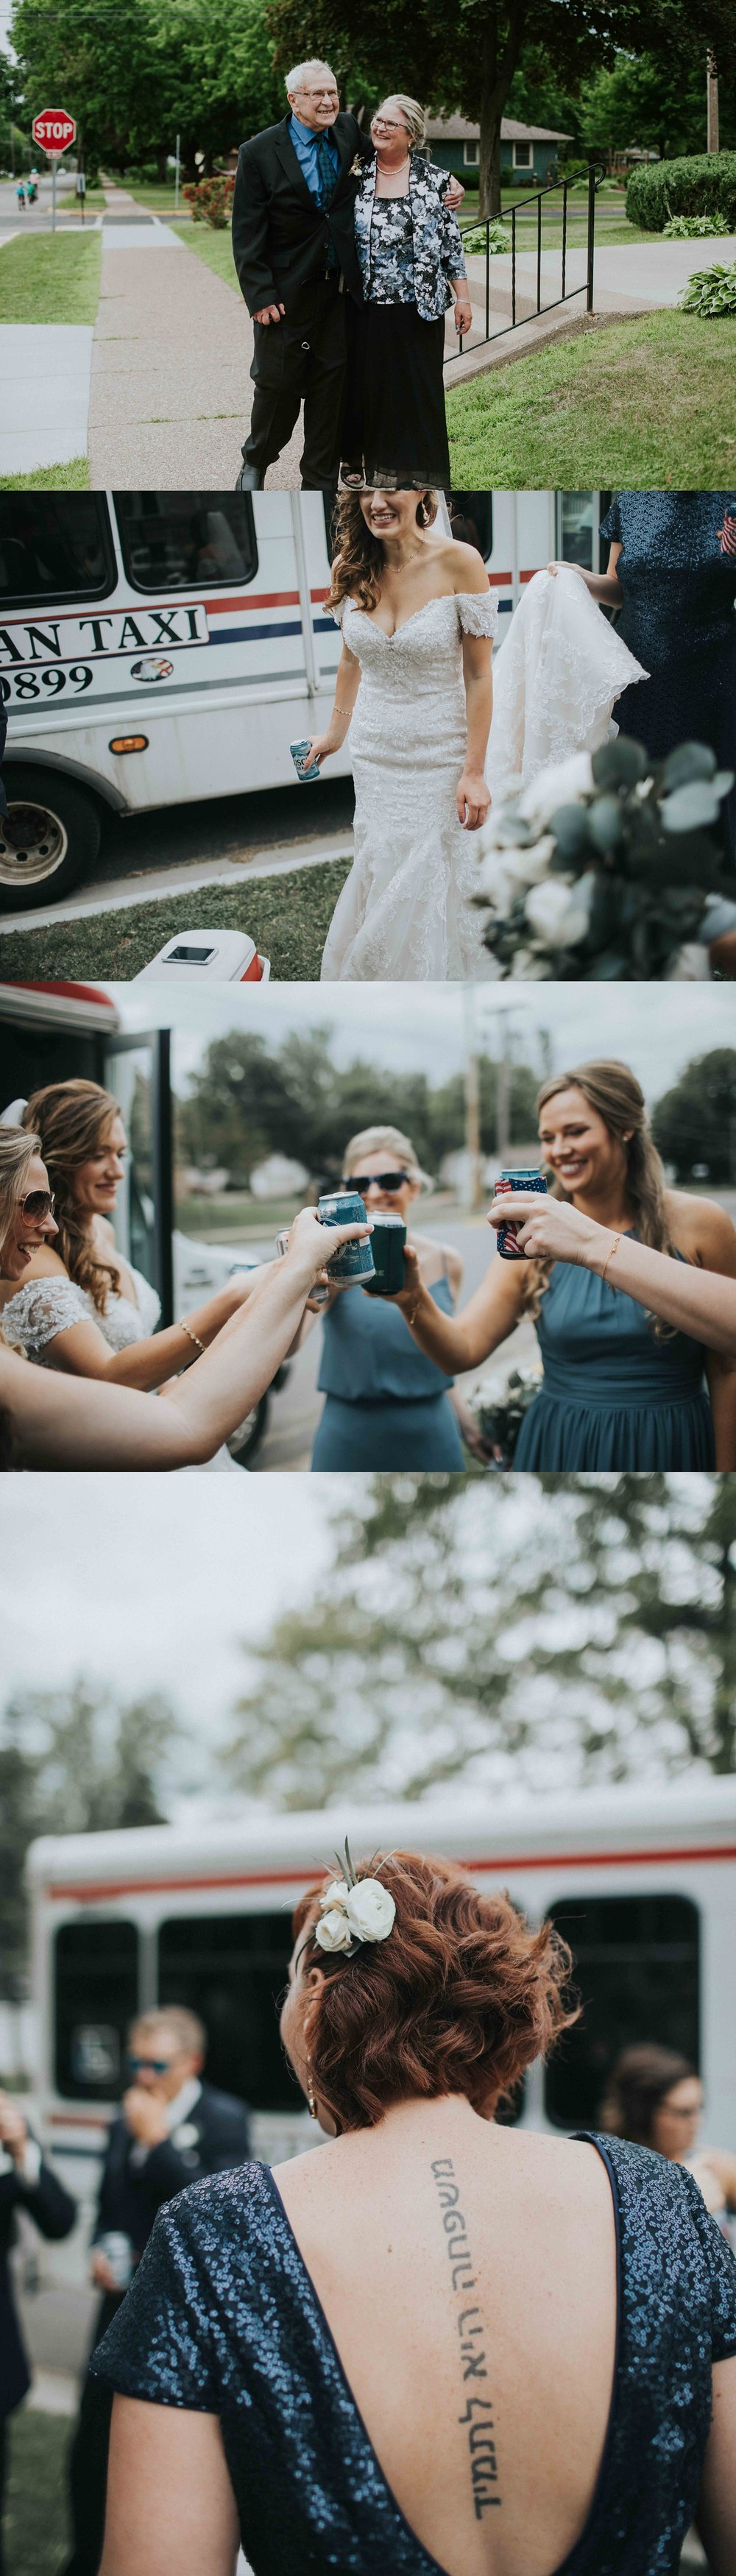 Bulls Eye Country Club Wedding Photographer Wisconsin Rapids Chloe Ann Photography_0006.jpg